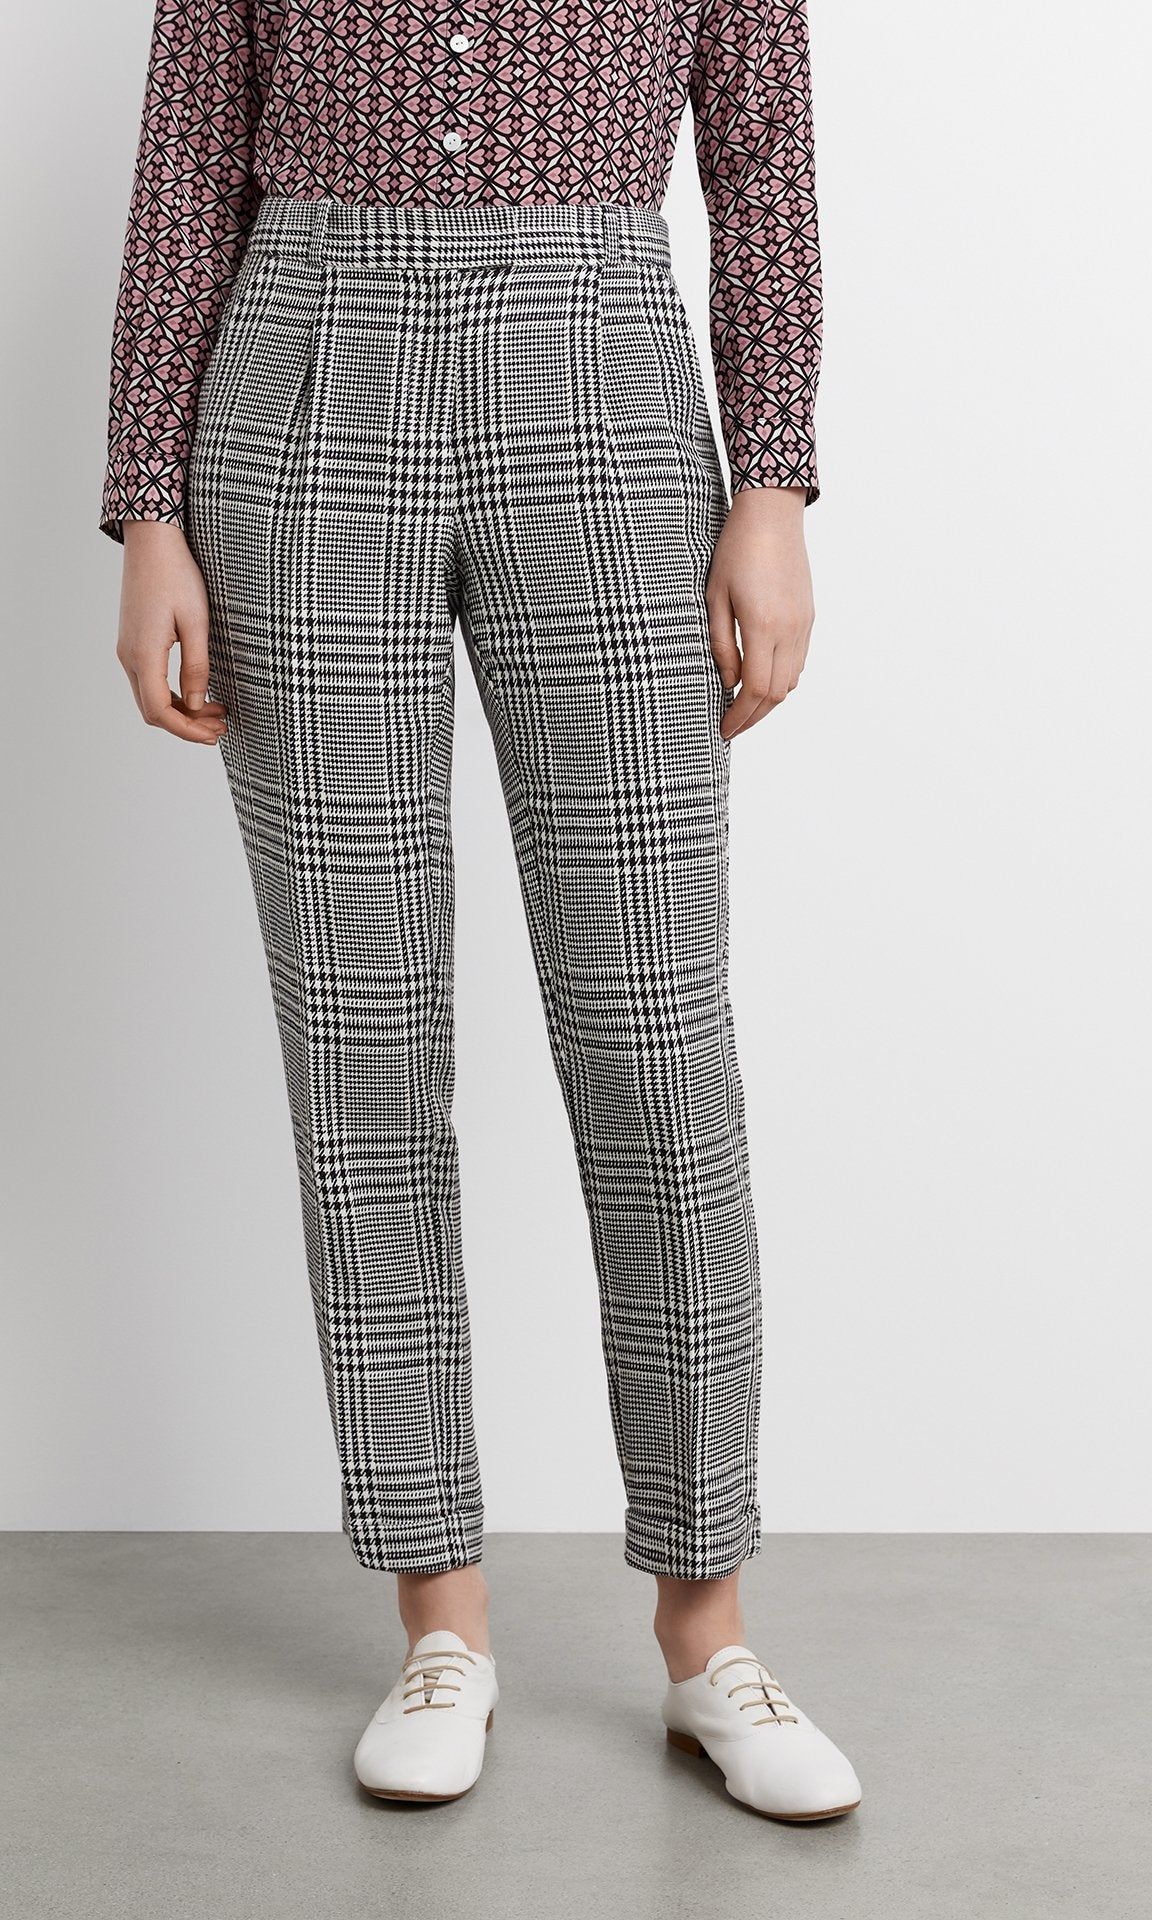 Galli Trouser - Blk/White